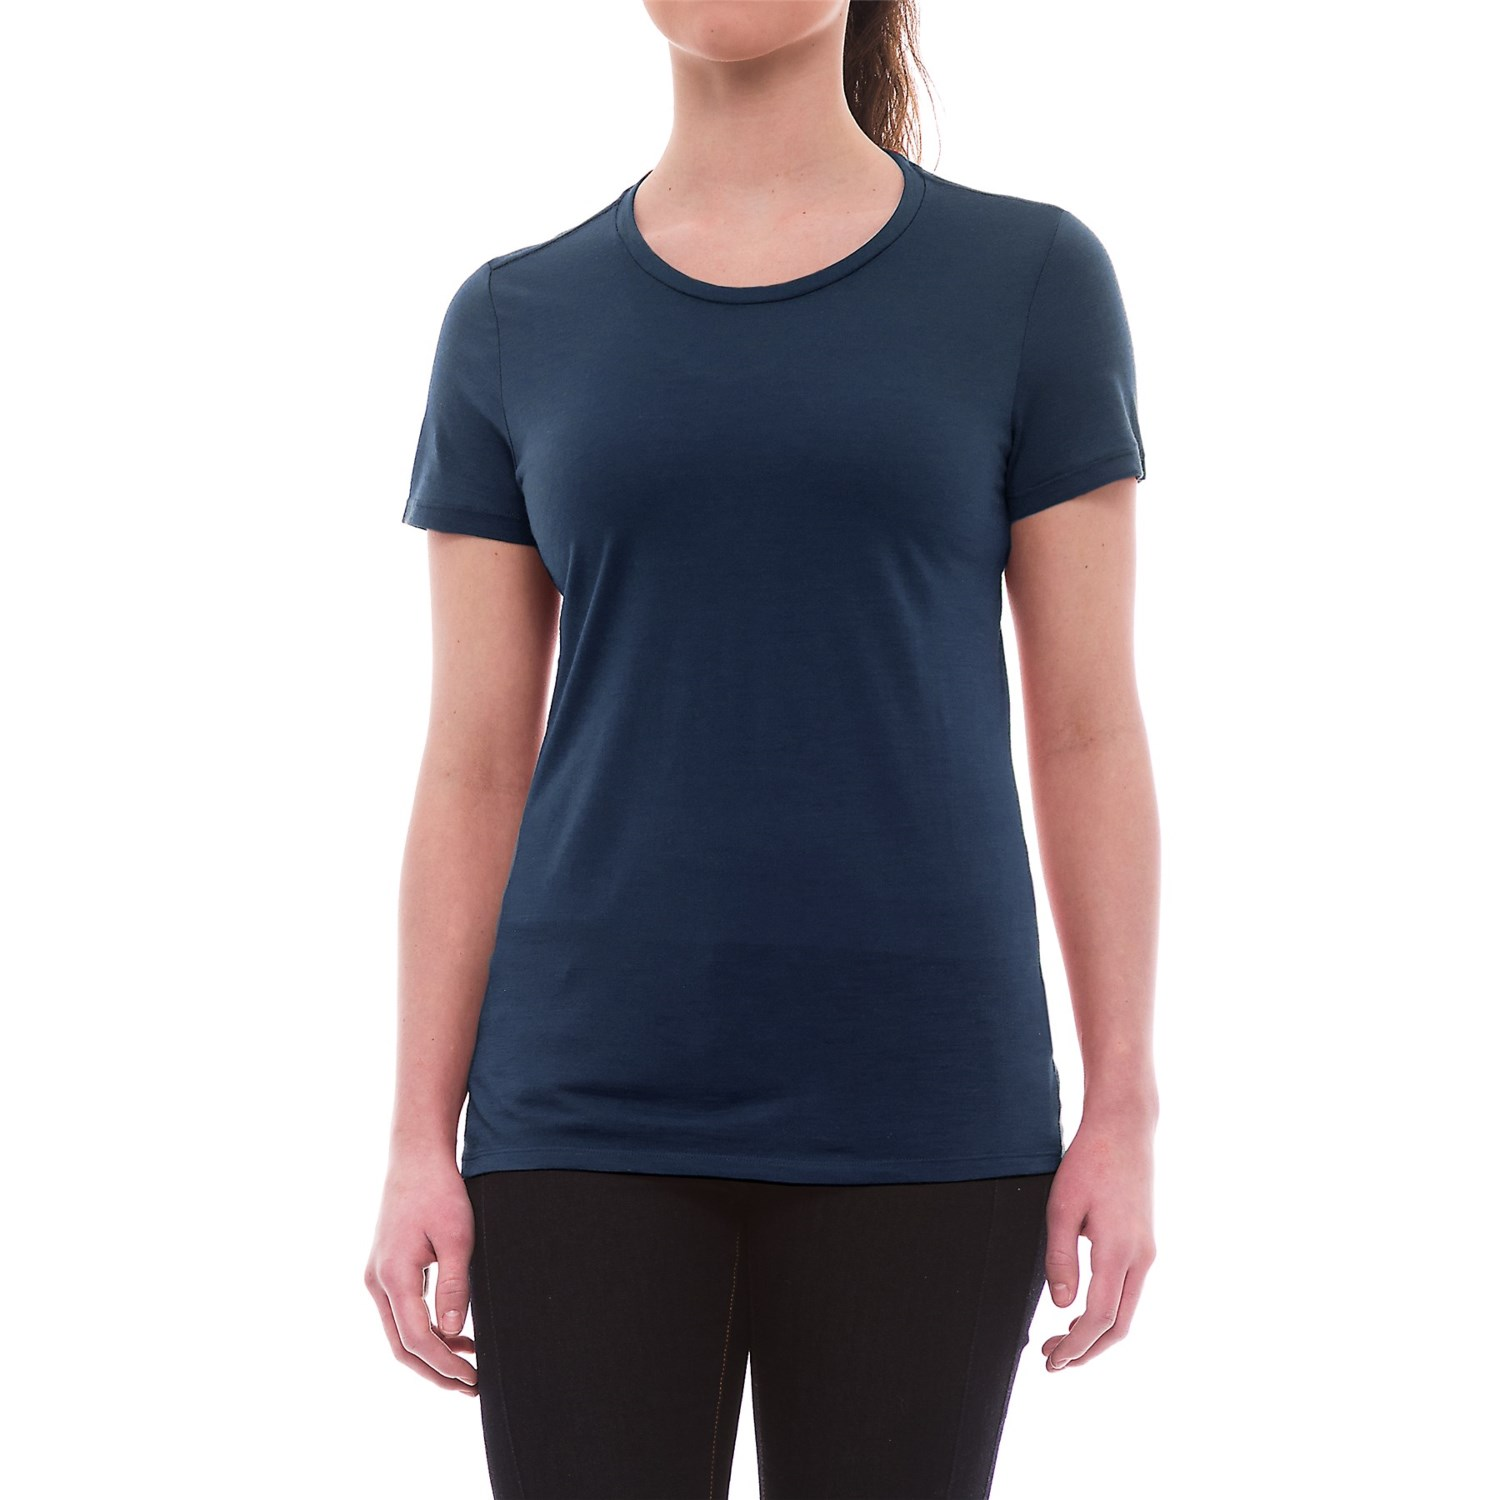 Icebreaker tech lite crewe t shirt for women save 46 for Merino wool shirts for travel